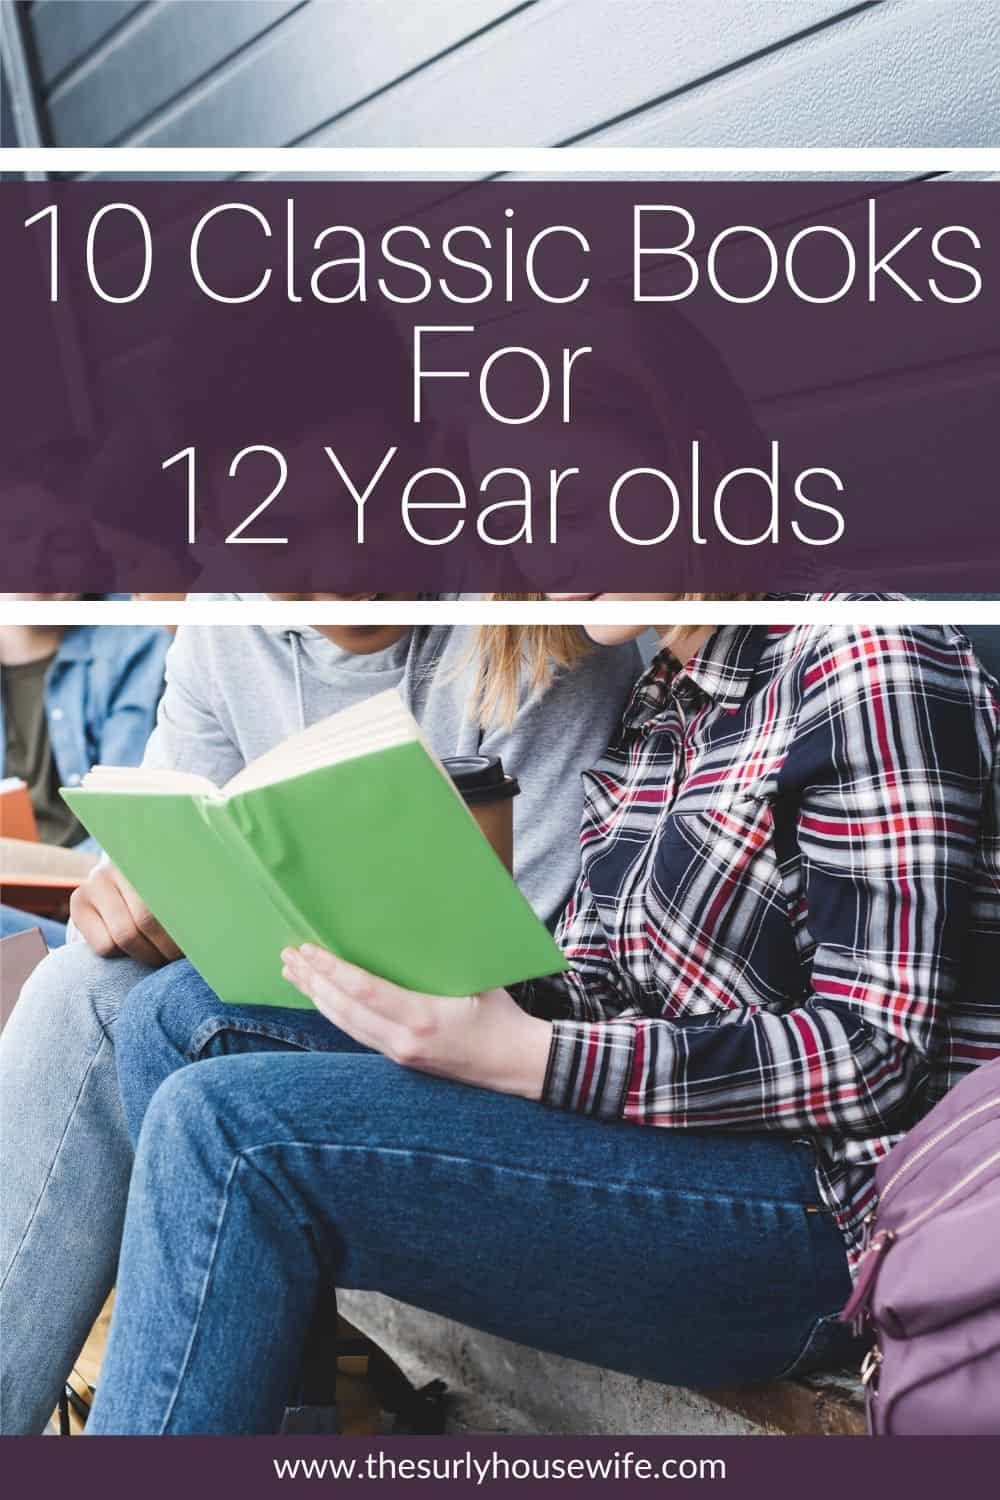 Searching for books for your 12 year old boy or girl? Then don't miss this list of book recommendations which contains classic books perfect for 12 year olds - 6th grade! They are perfect for reading aloud, independent reading, or a summer reading list! Introduce your child to some of your favorite book from when you were a kid! 10 of the best chapter books for 12 year olds.